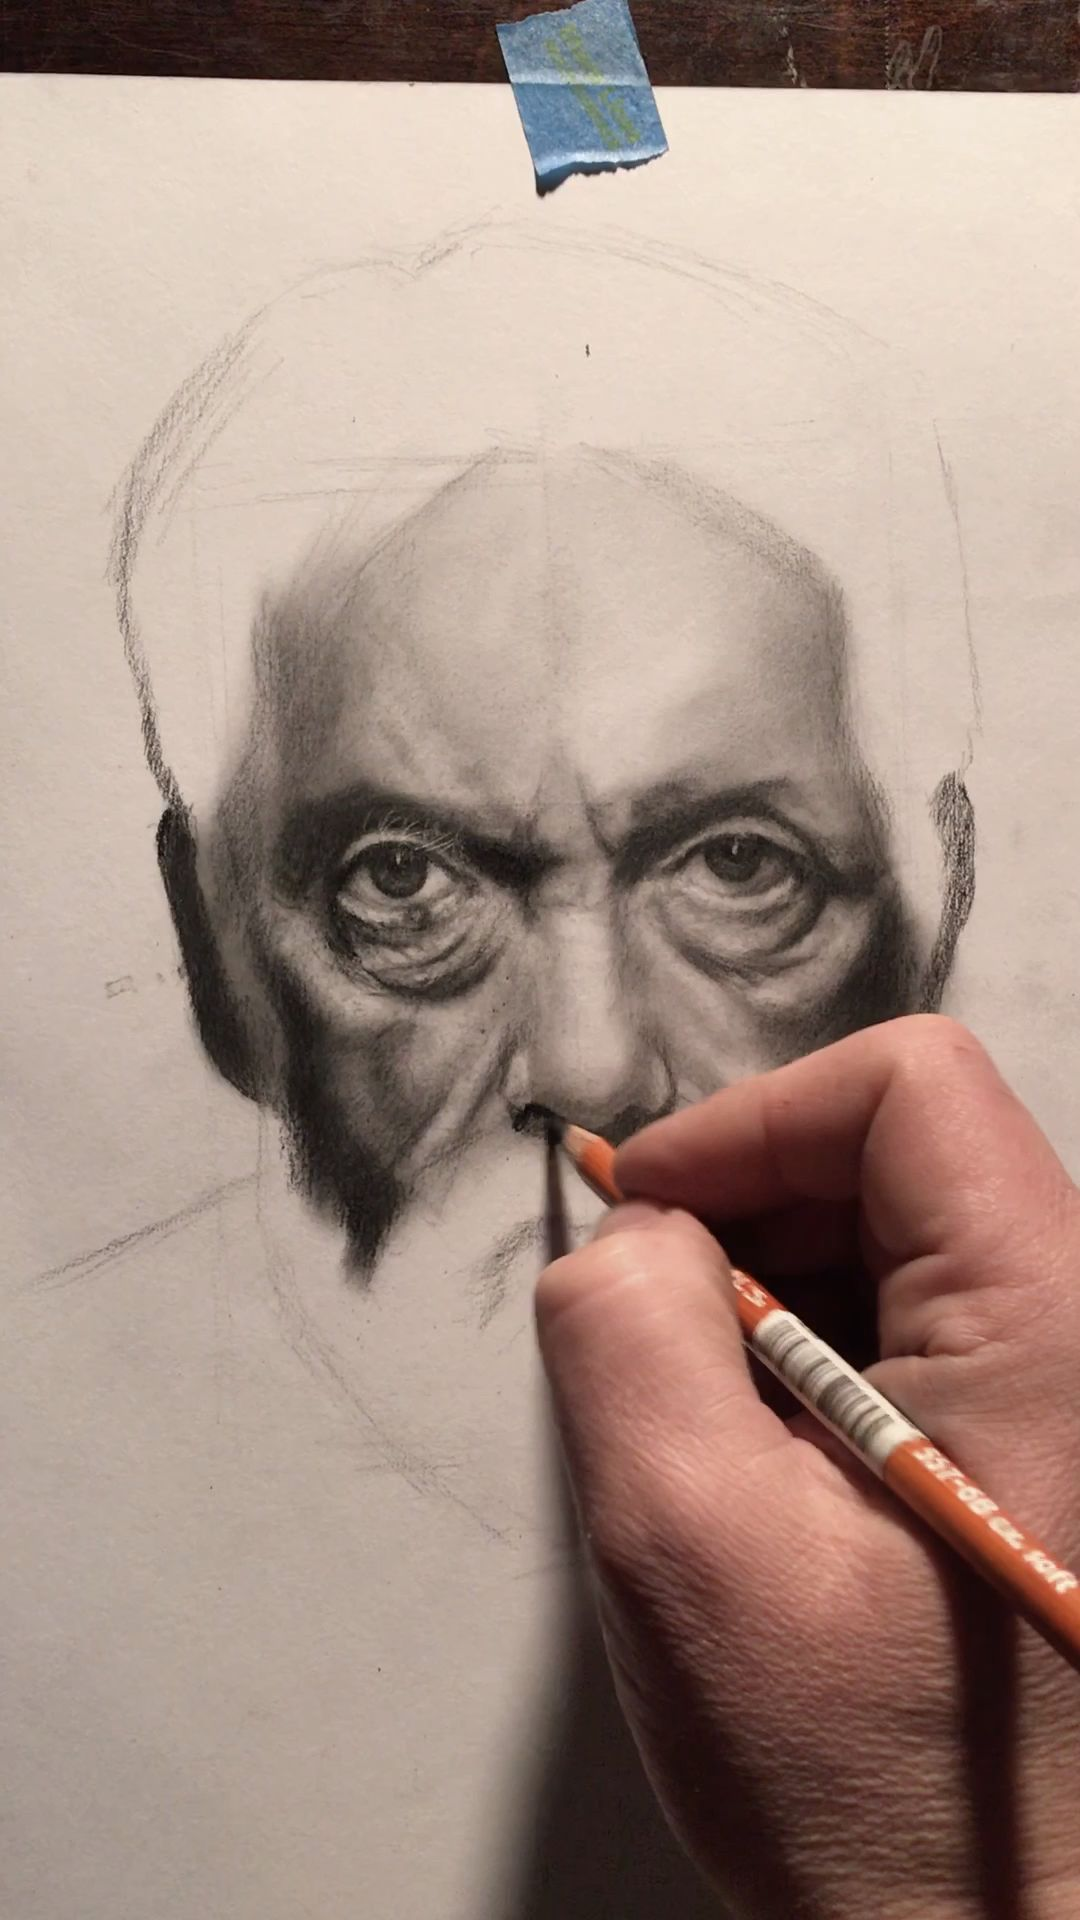 "Realistic portrait drawing techniques by classical figurative realism artist Eric Armusik. Charcoal pencil portraits on paper, 11 x 14"" #realistic #portraitdrawing #realism #drawing  #drawingtips  Study with me online from anywhere in the world.  Click the link below."